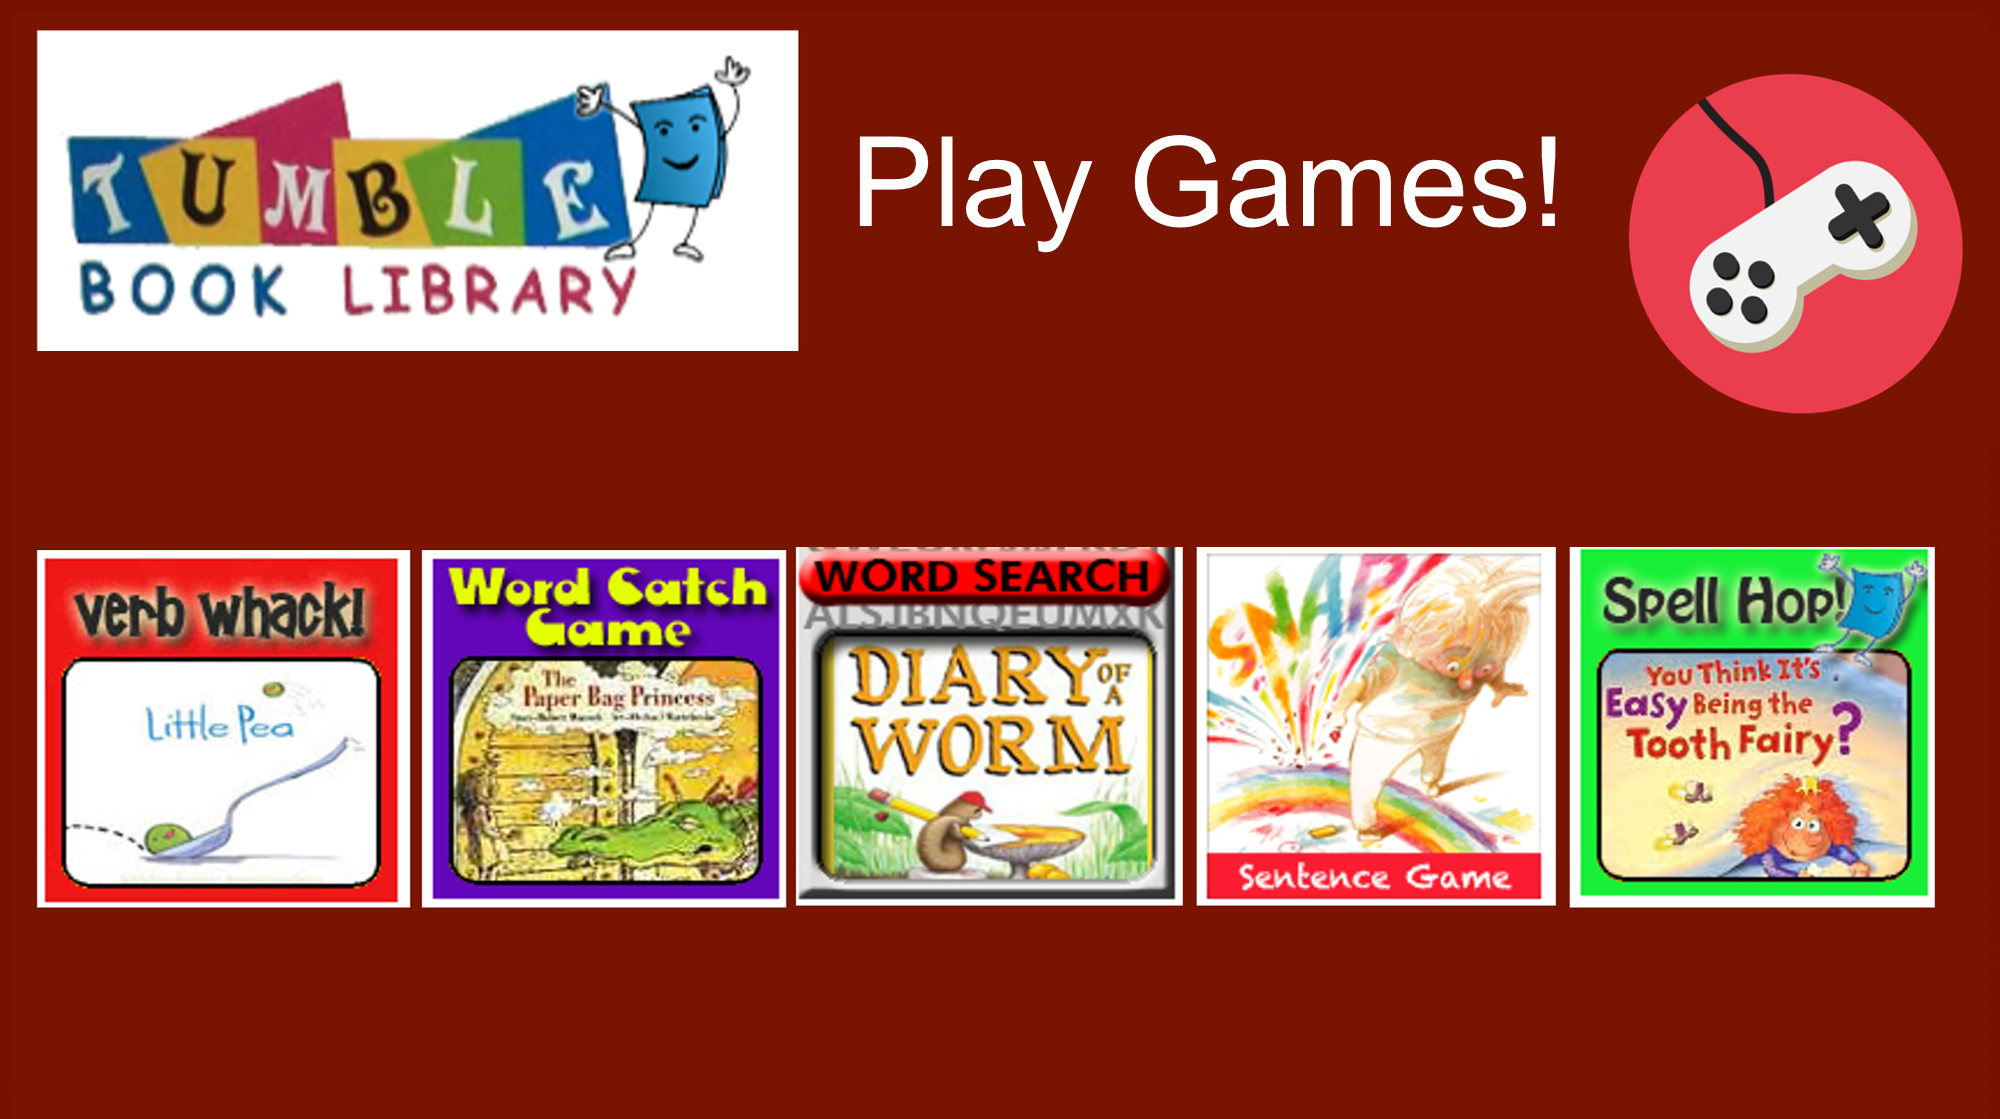 Tumble Book Library: Play Games!